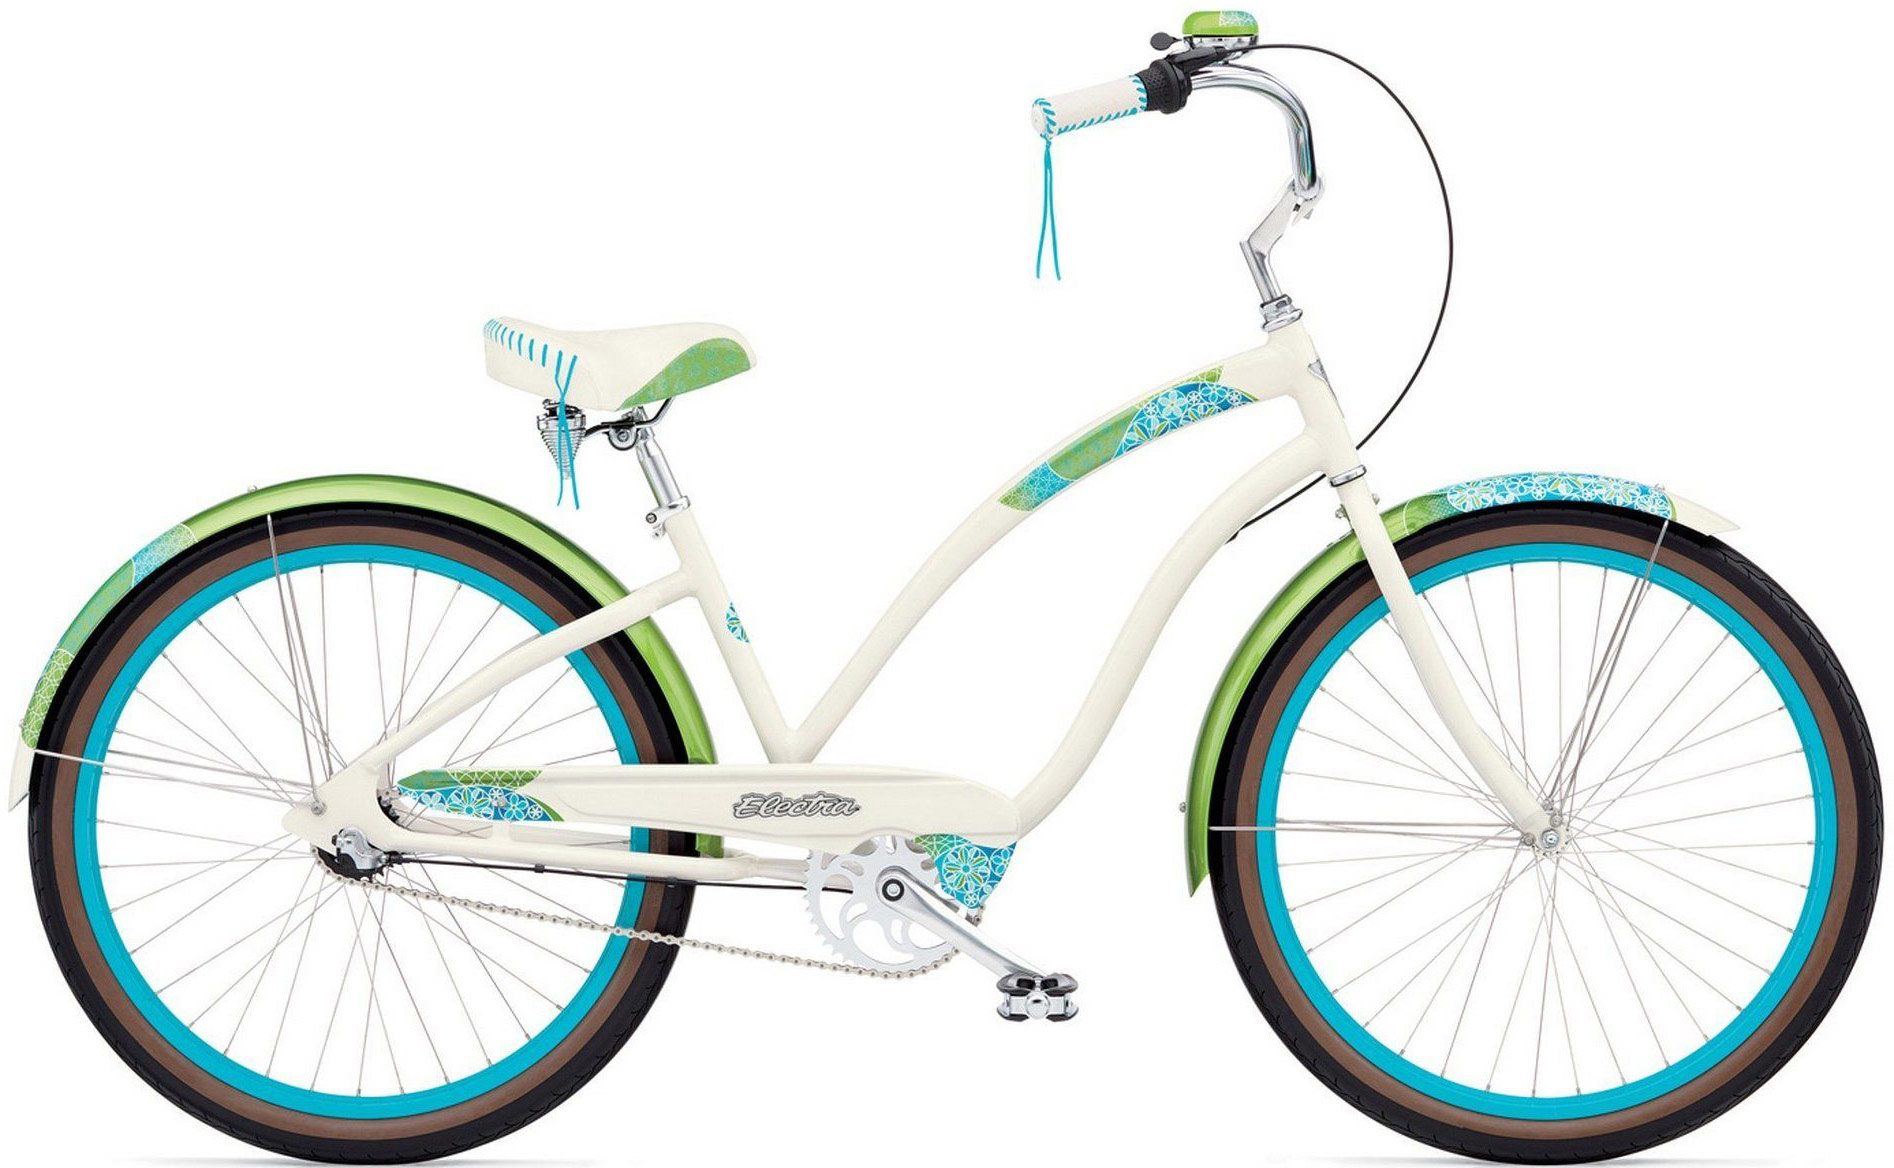 Electra Cirque 3i Women S American Cycle Amp Fitness